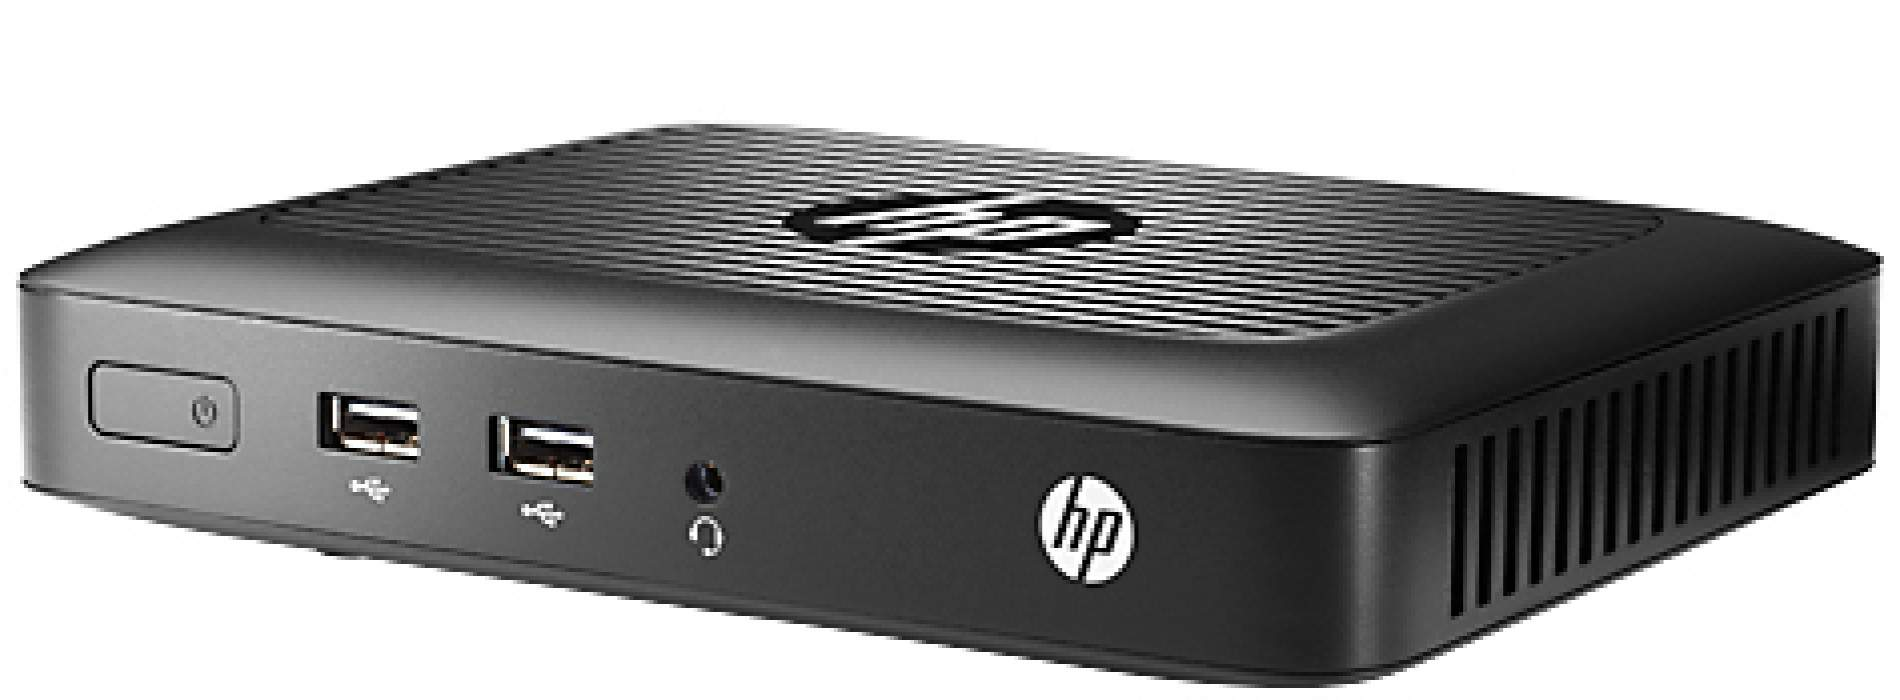 HP Thin Client t420: ¿Eres de Linux o de Windows?